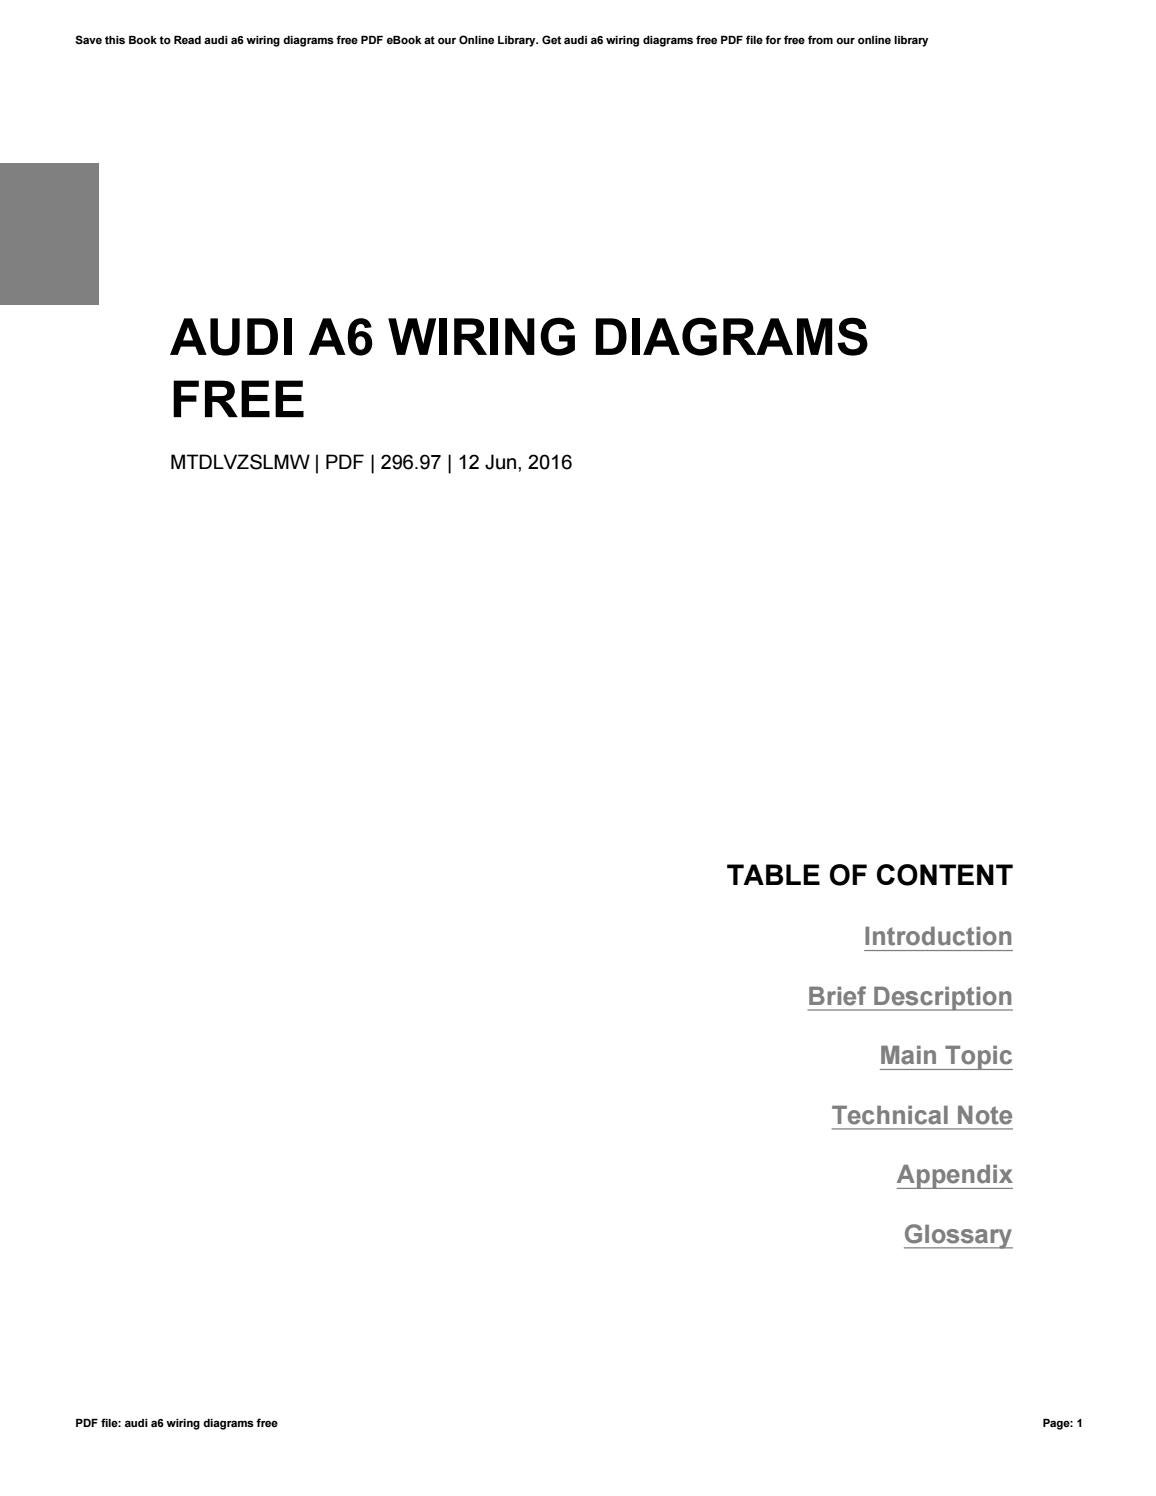 Audi A6 Wiring Diagram Pdf Library Diagrams Free By Jeffreygalloway3614 Issuu